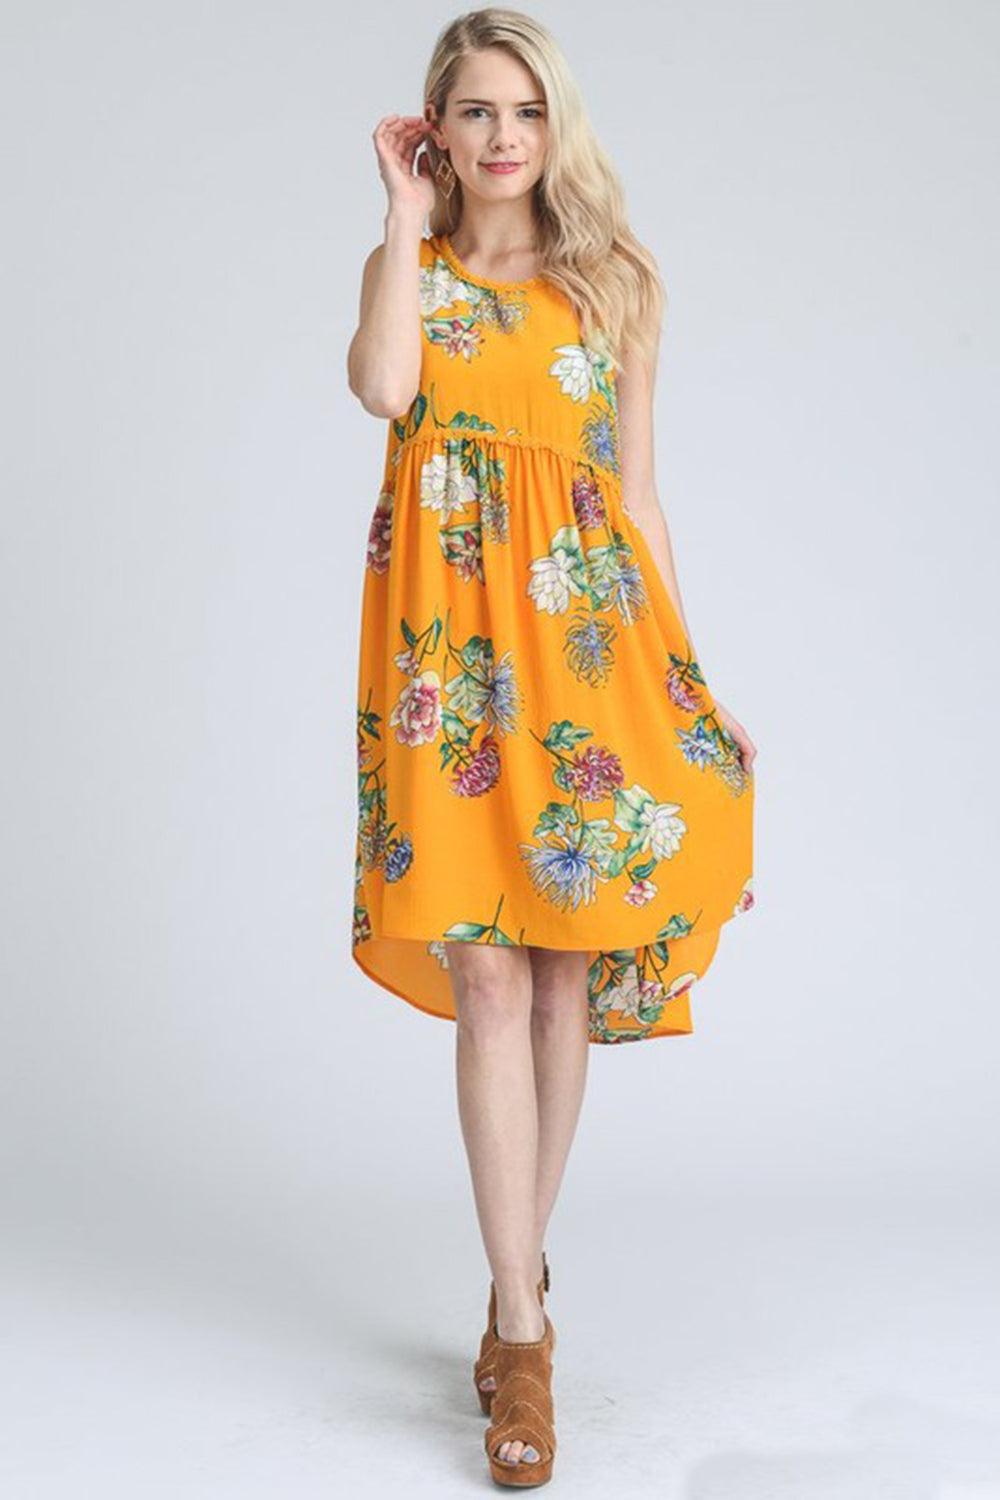 Aynara Fashion Floral Print Smocked Dress